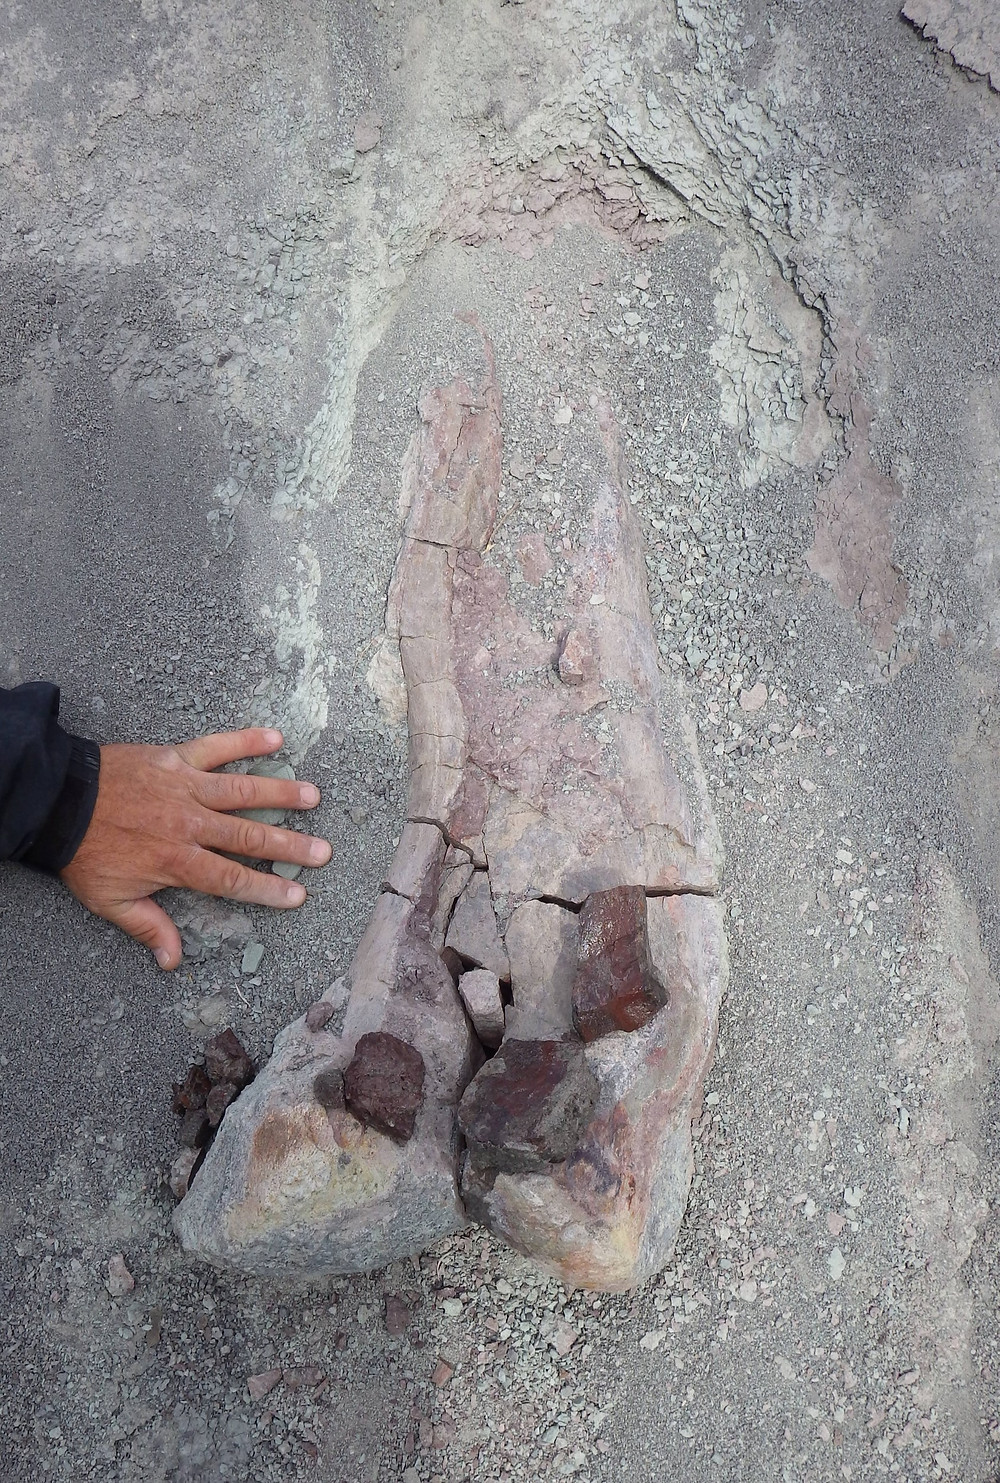 A large hadrosaur femur that is cracked needs a plaster jacket